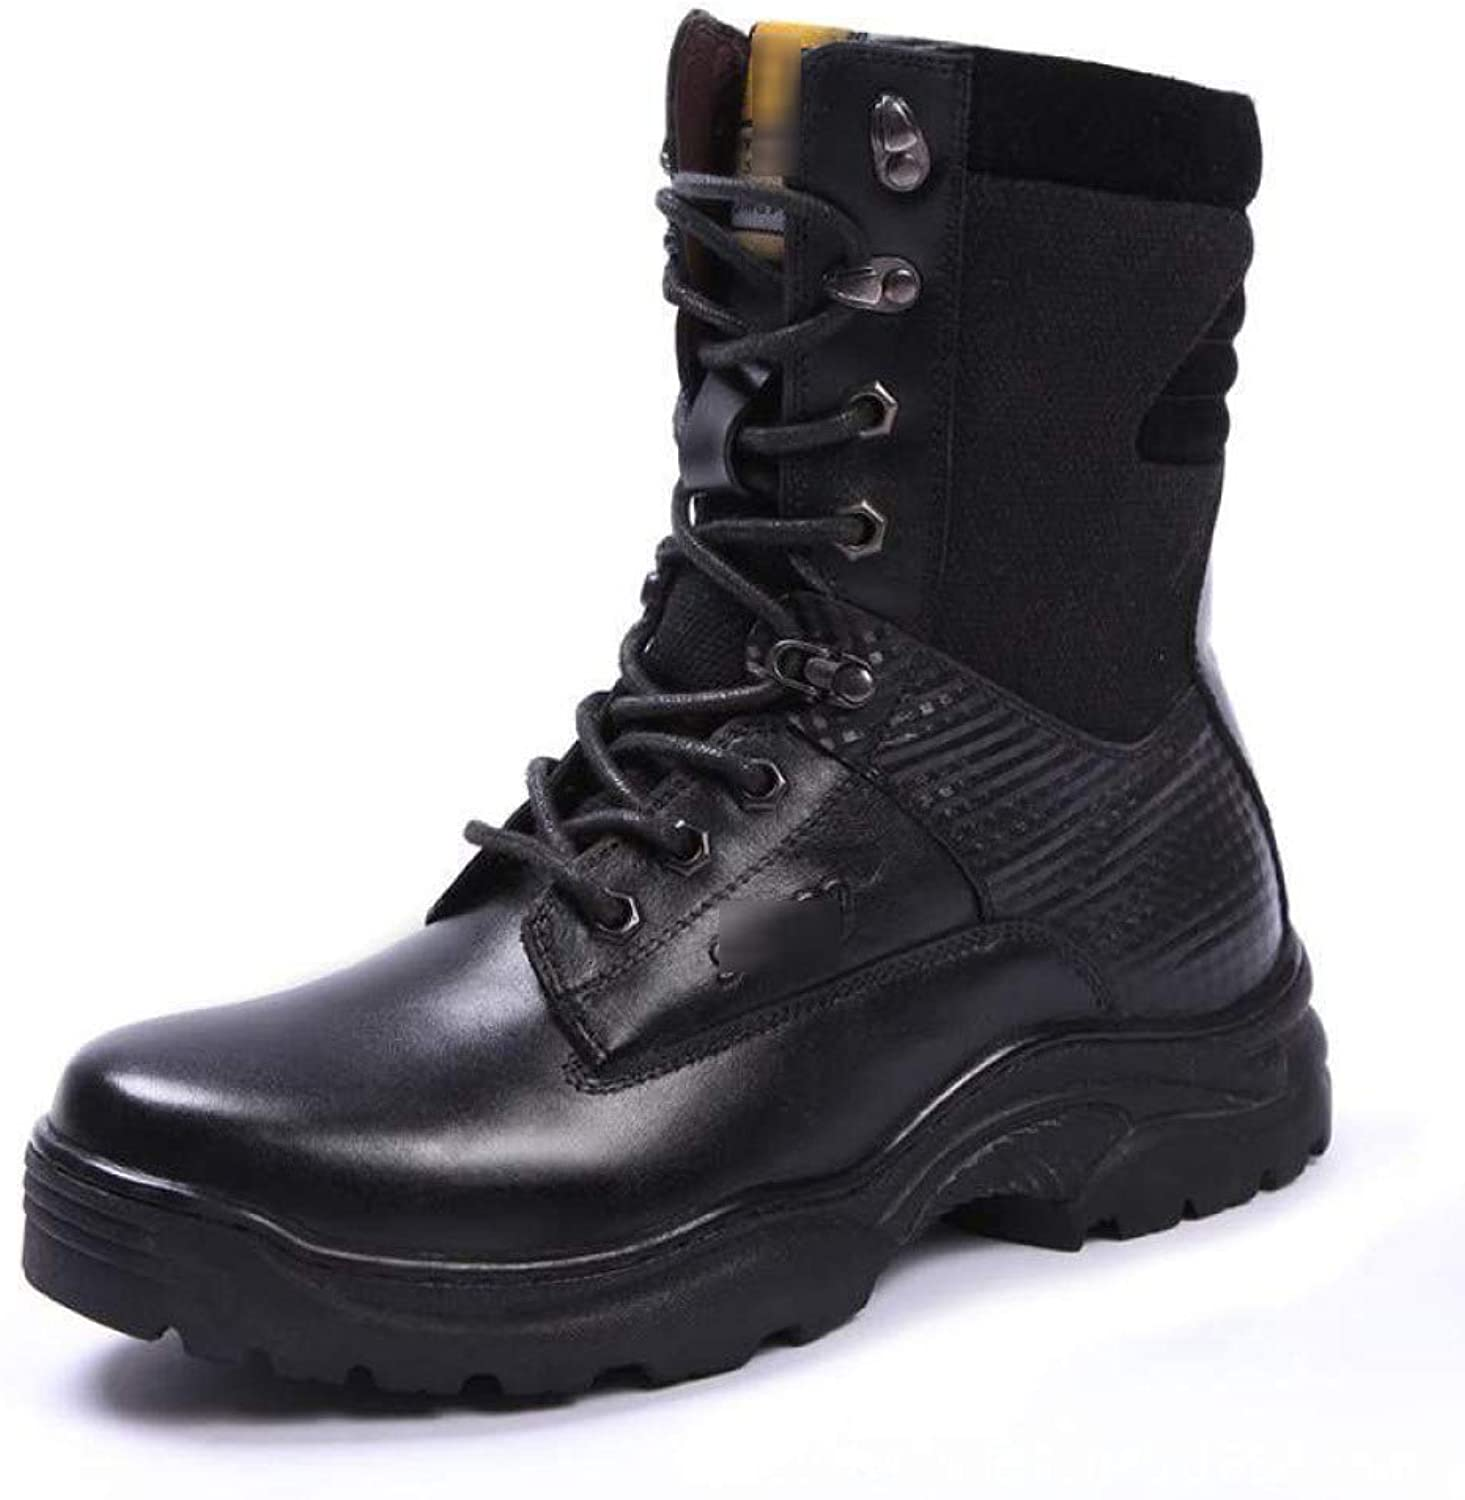 Tactical Boots Outdoor Men's Waterproof Plus Velvet Leather Boots Special Forces Combat Boots Desert Boots